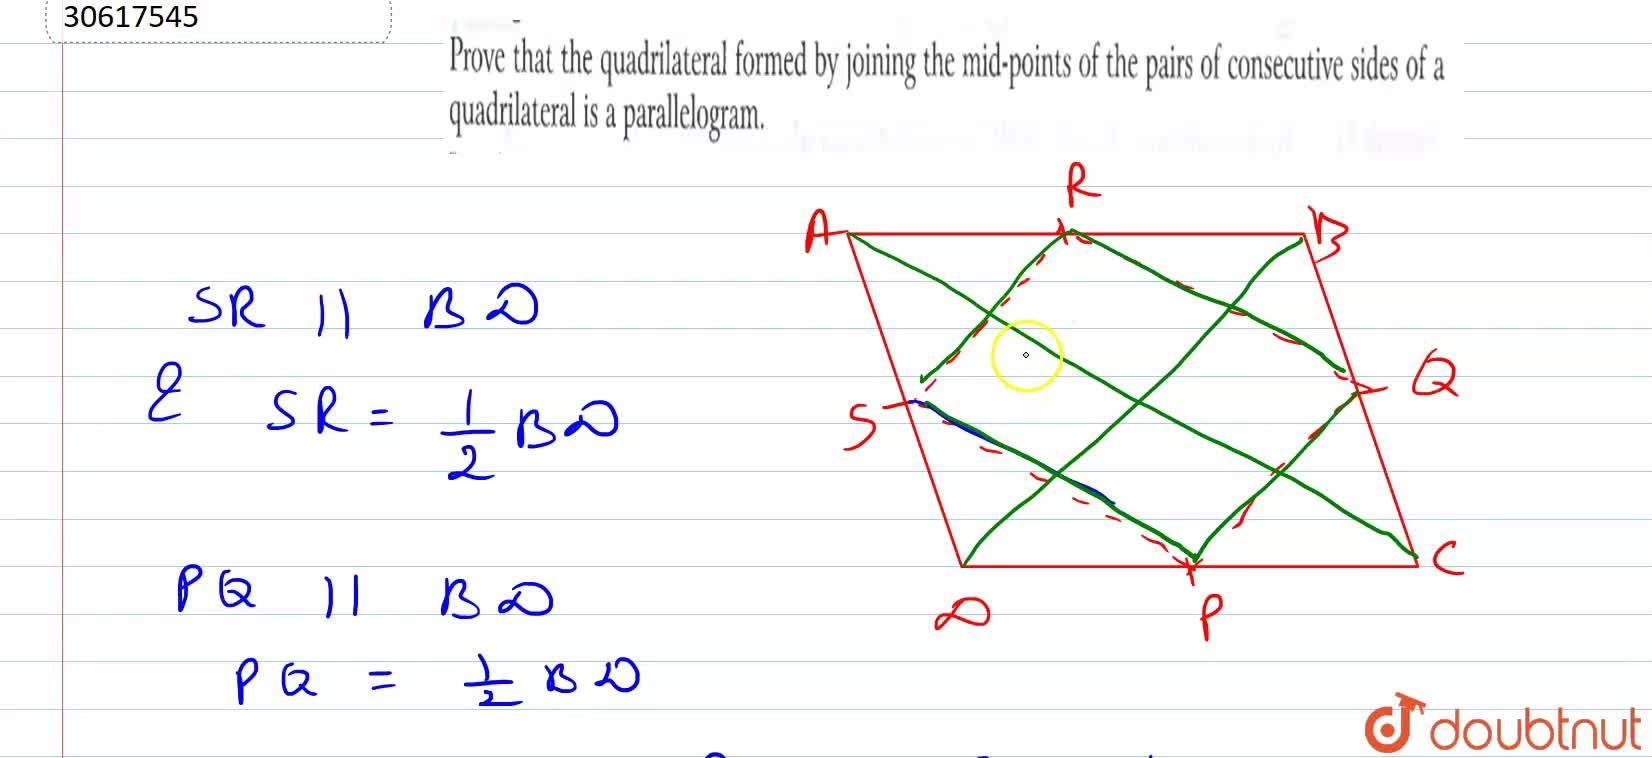 Prove that the quadrilateral formed by joining the mid-points of the pairs of consecutive sides of a quadrilateral is a parallelogram.